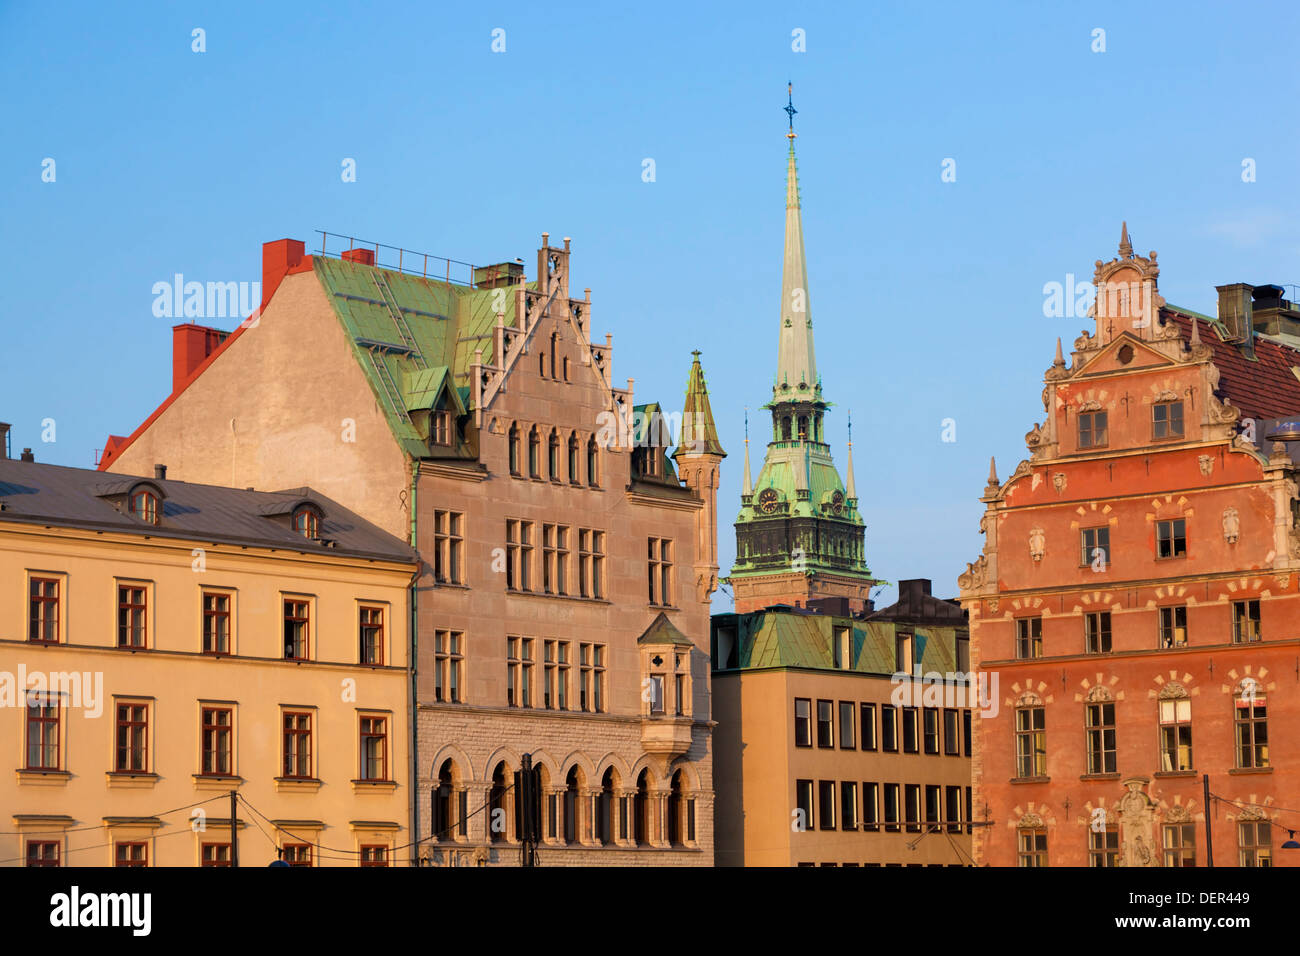 Old town buildings in Gamla Stan district, Stockholm, Sweden. - Stock Image